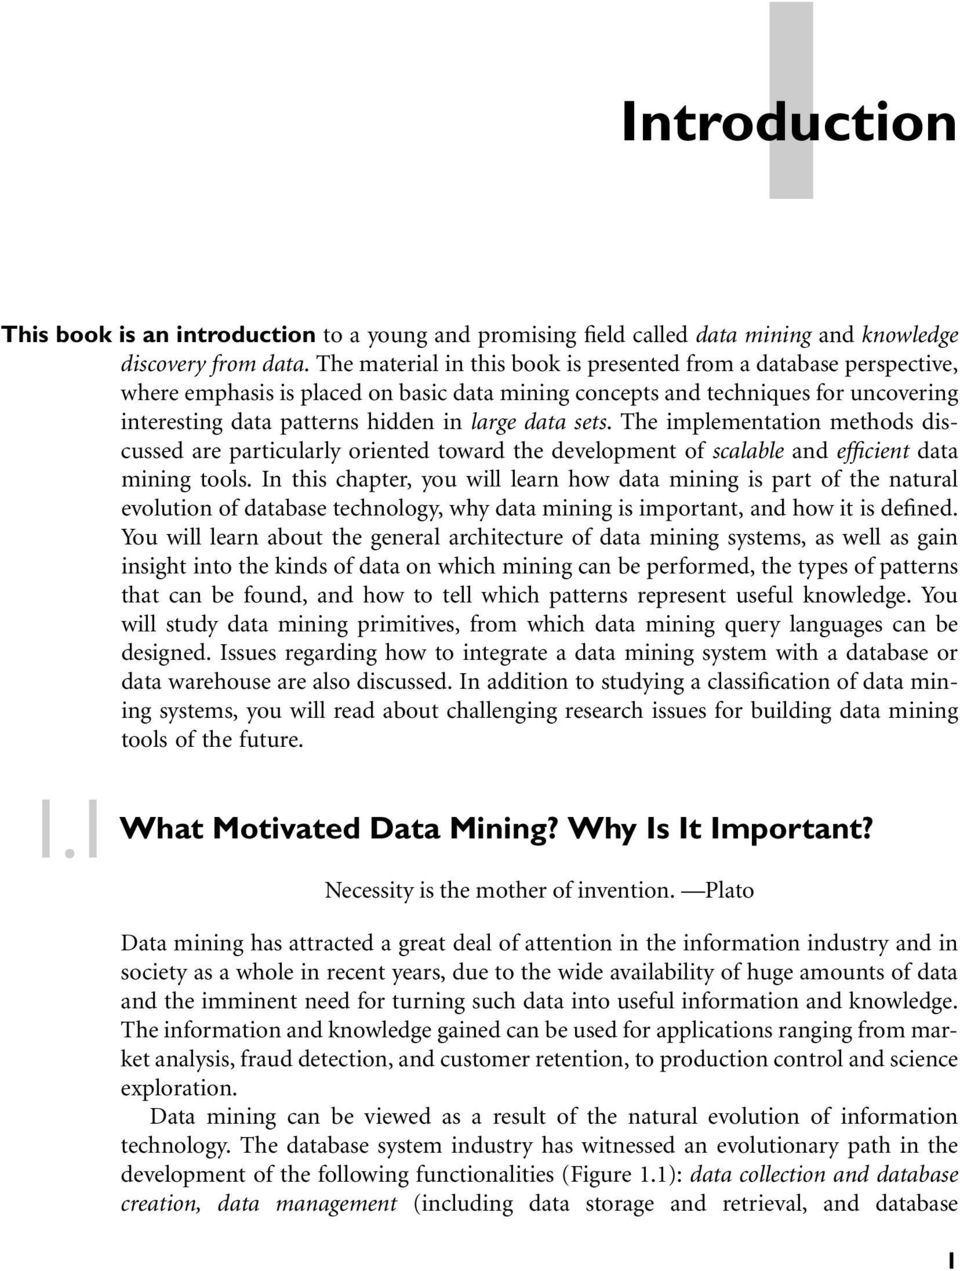 1.1. introduction. what motivated data mining? why is it important